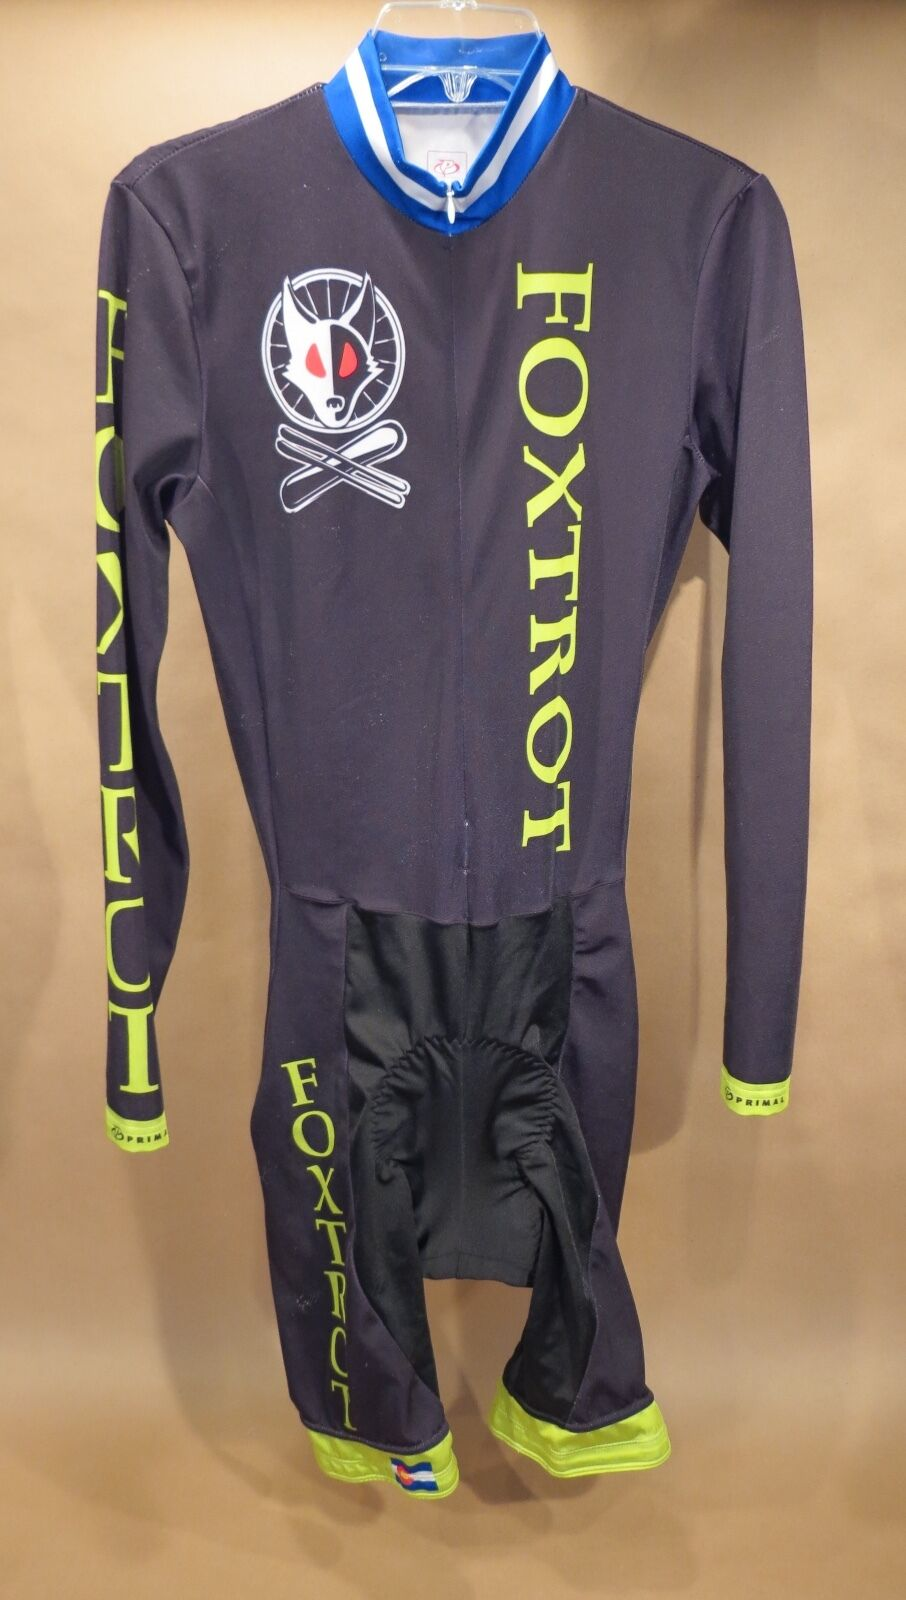 Foxtred Cycling Skinsuit • Large • Primal • APX Chamois • Long Sleeve • Fox Tred